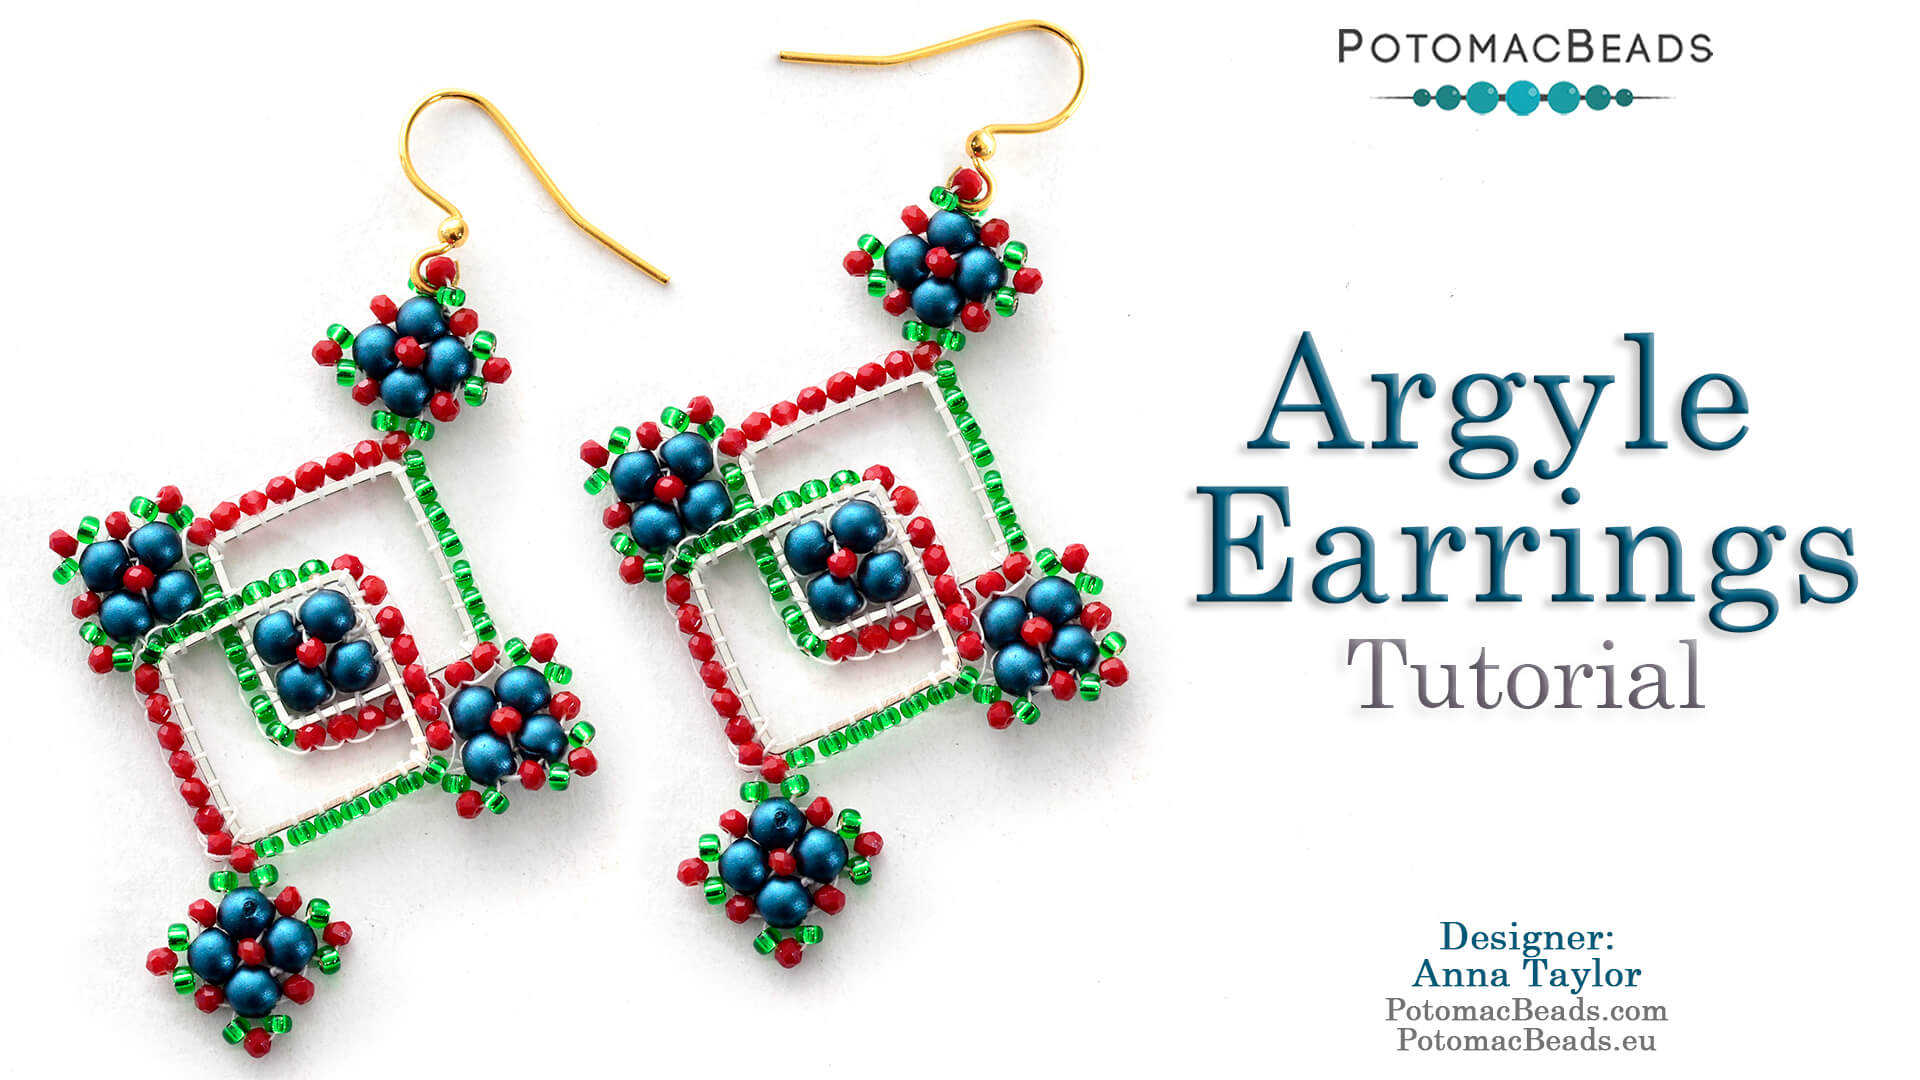 How to Bead Jewelry / Videos Sorted by Beads / Potomac Crystal Videos / Argyle Earrings Tutorial